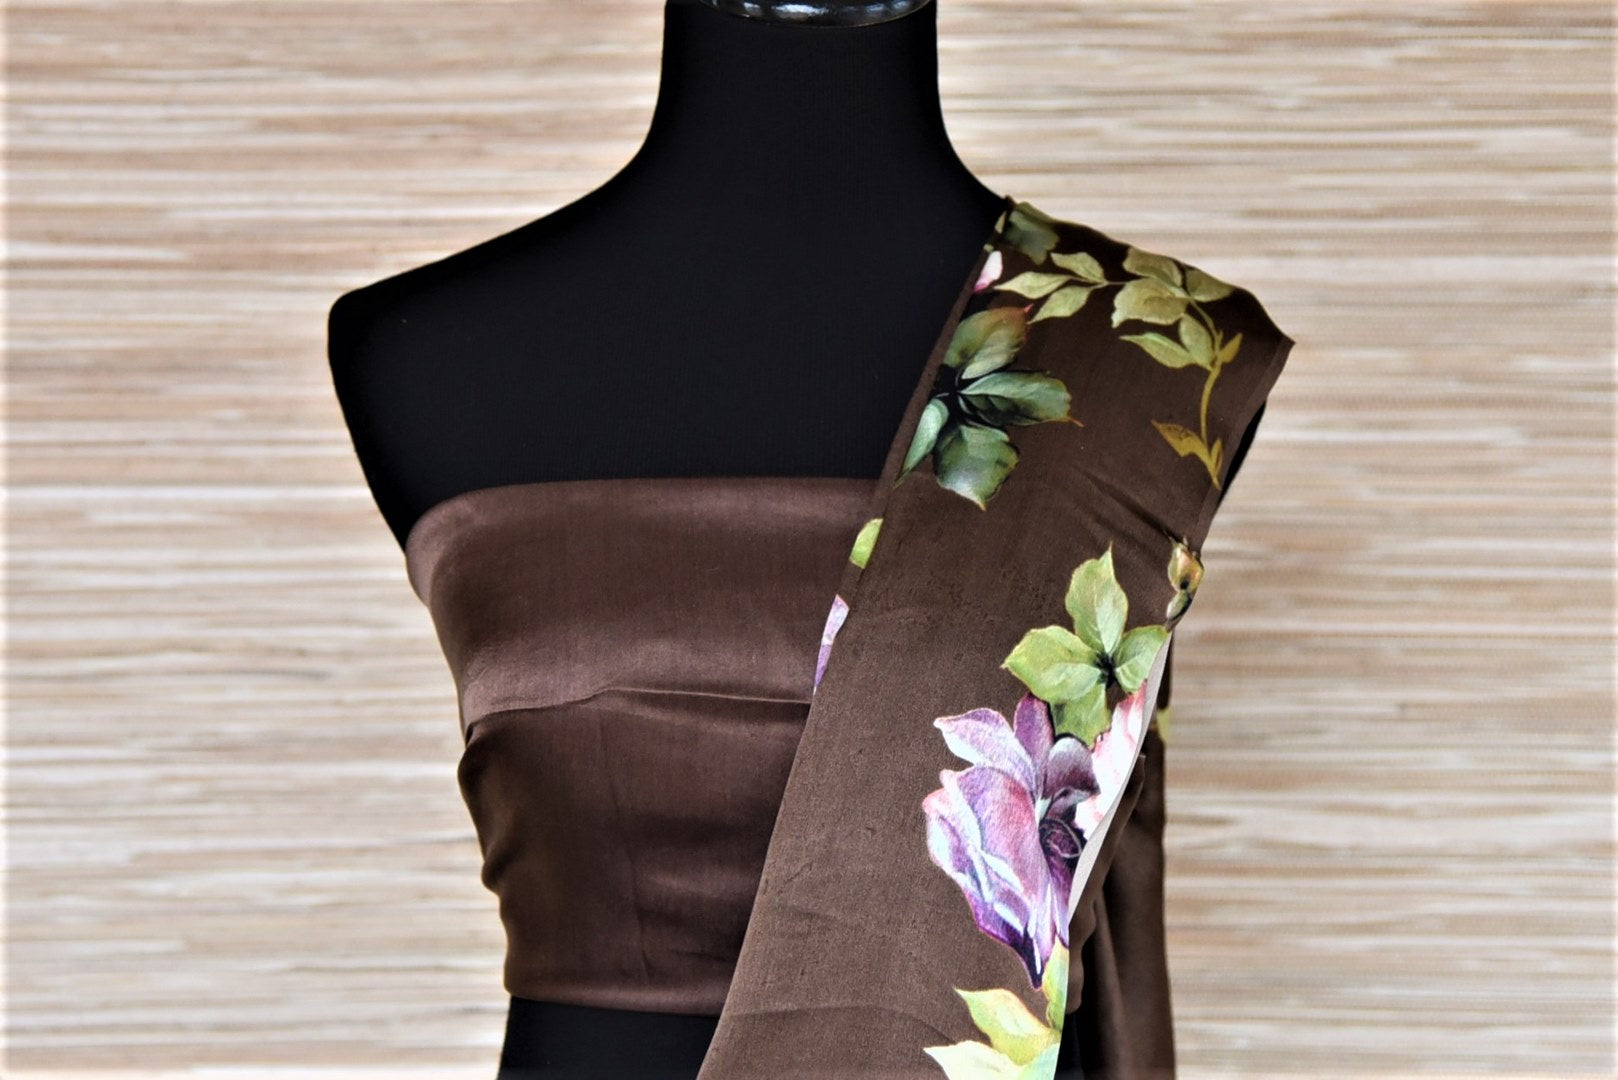 Buy ombre brown floral print satin crepe saree online in USA. Be the highlight of the parties and festive occasions with tasteful silk sarees, crepe saris, embroidered designer sarees from Pure Elegance Indian fashion store in USA.-blouse pallu